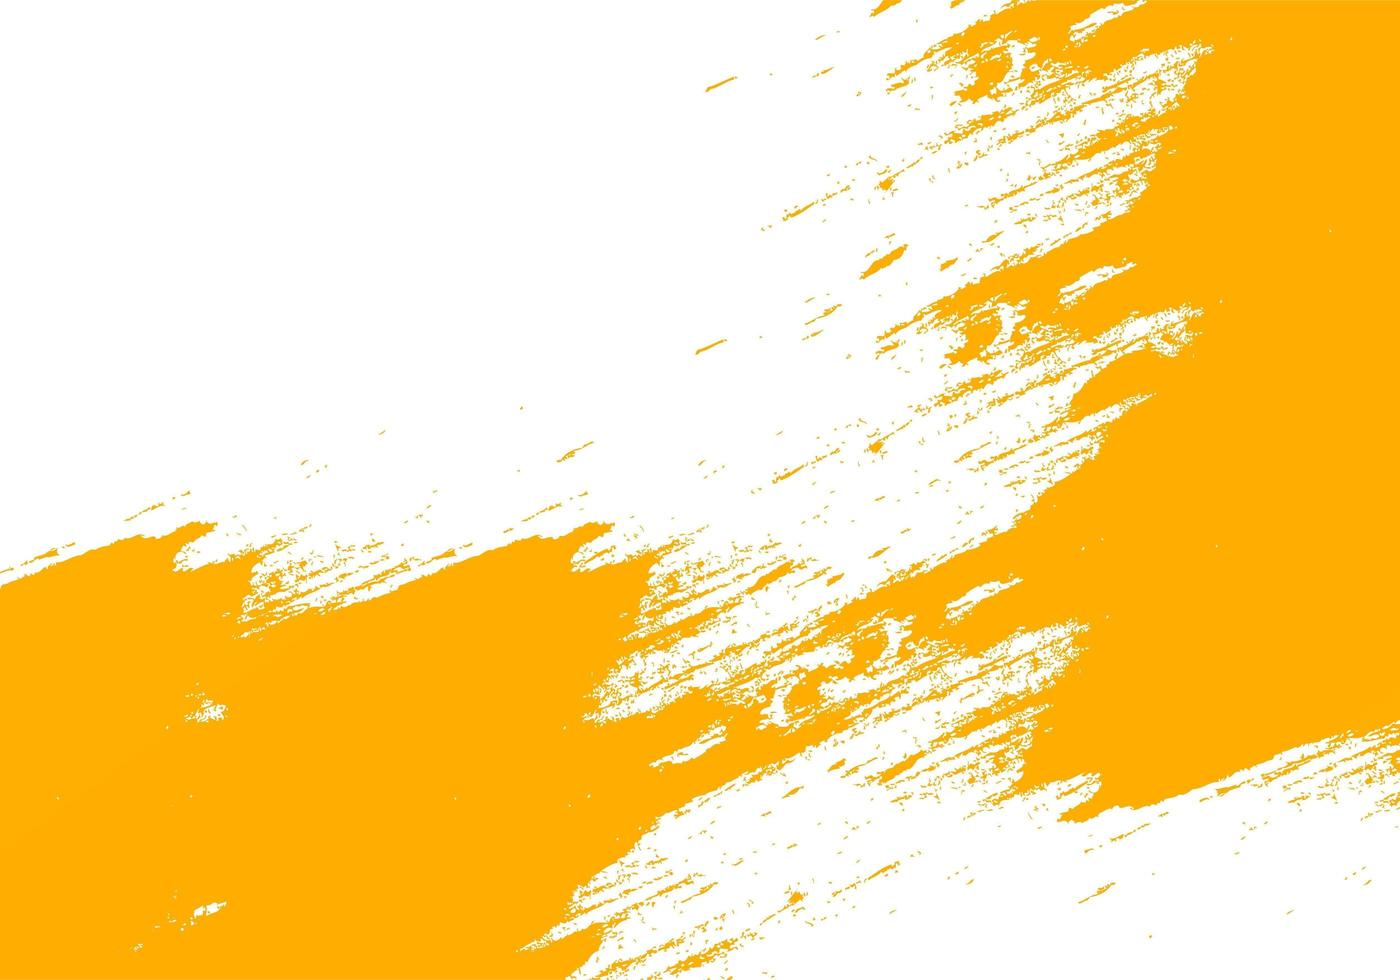 Orange Grunge Brush Stroke Texture Going Toward Center vector